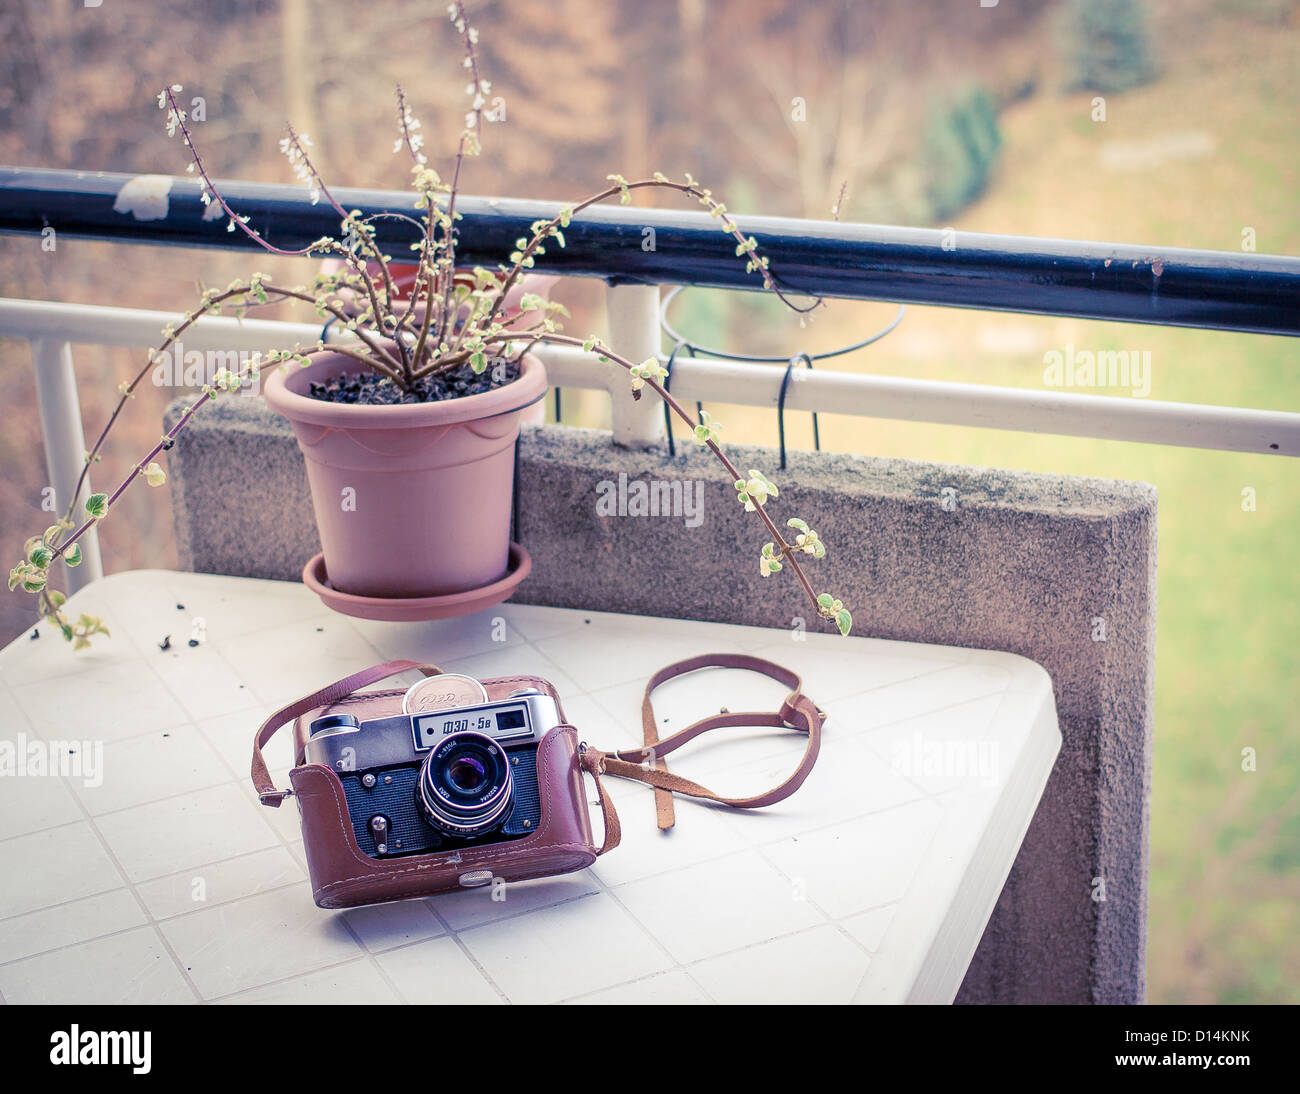 Vintage soviet analog camera (fed-5v) in its brown leather case, put on a white balcony table - Stock Image